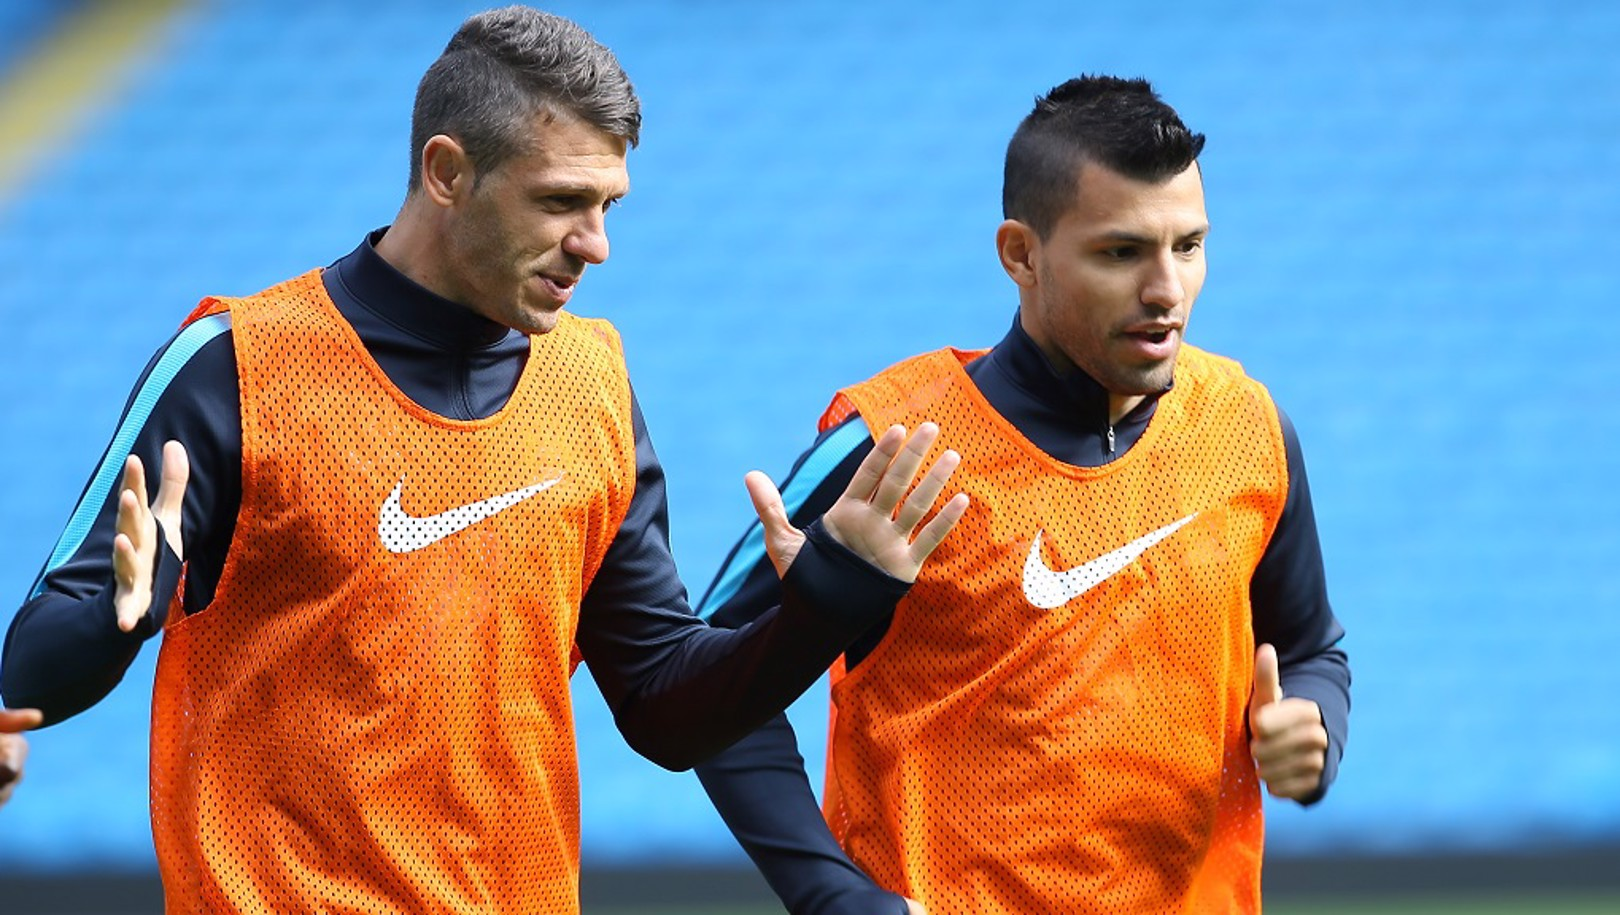 ADVICE: Martin Demichelis chats with Sergio back in 2015